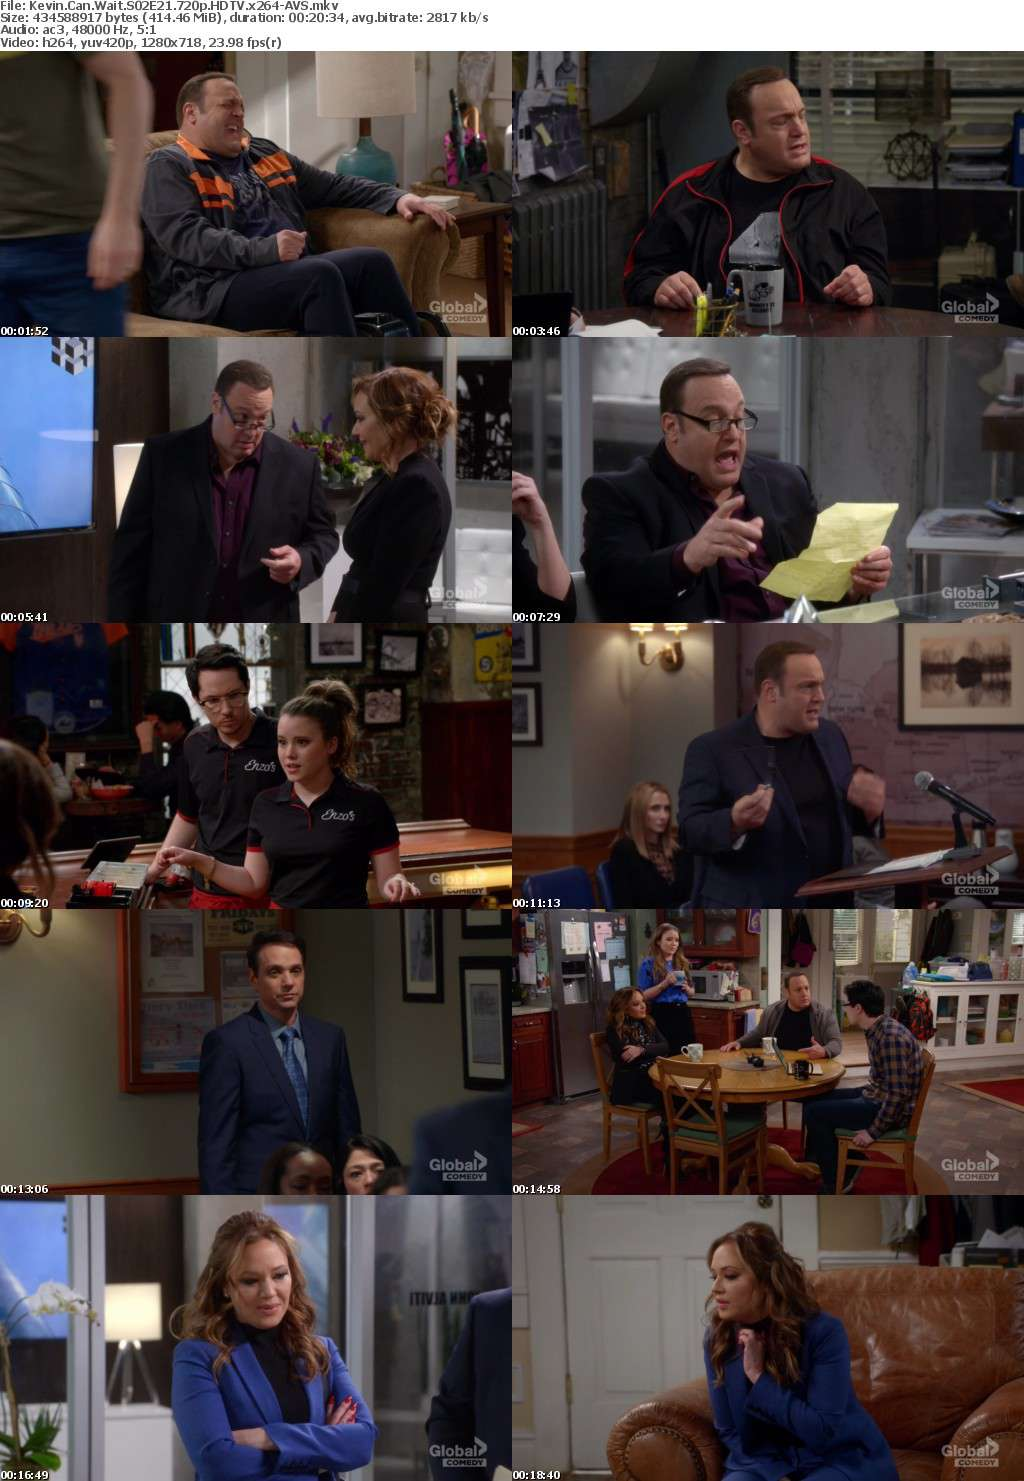 Kevin Can Wait S02E21 720p HDTV x264-AVS